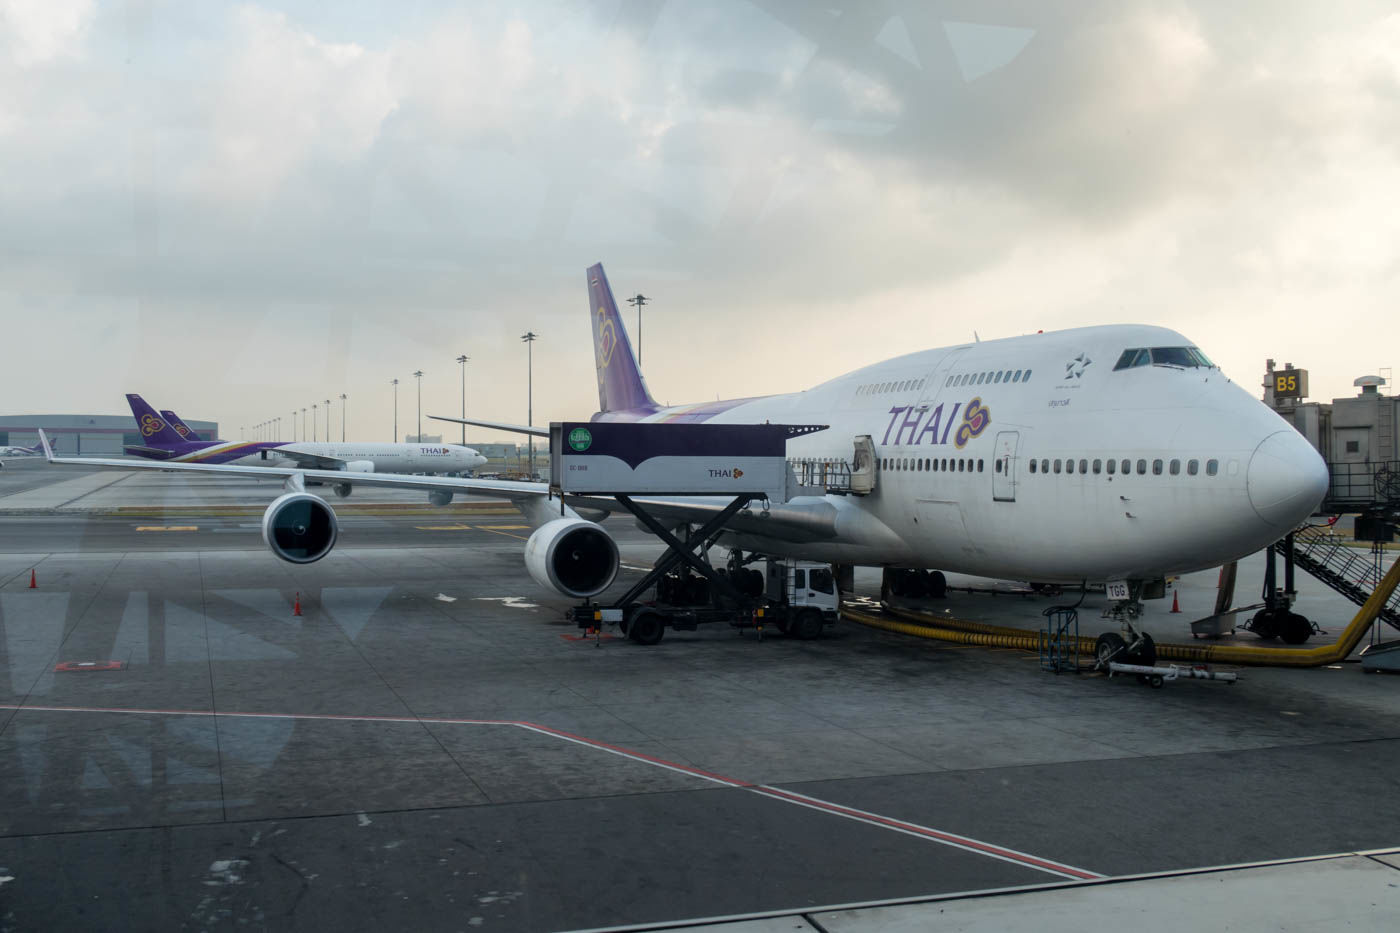 Thai Airways seeks to conserve finances by offering unpaid leave, early retirement | Thaiger